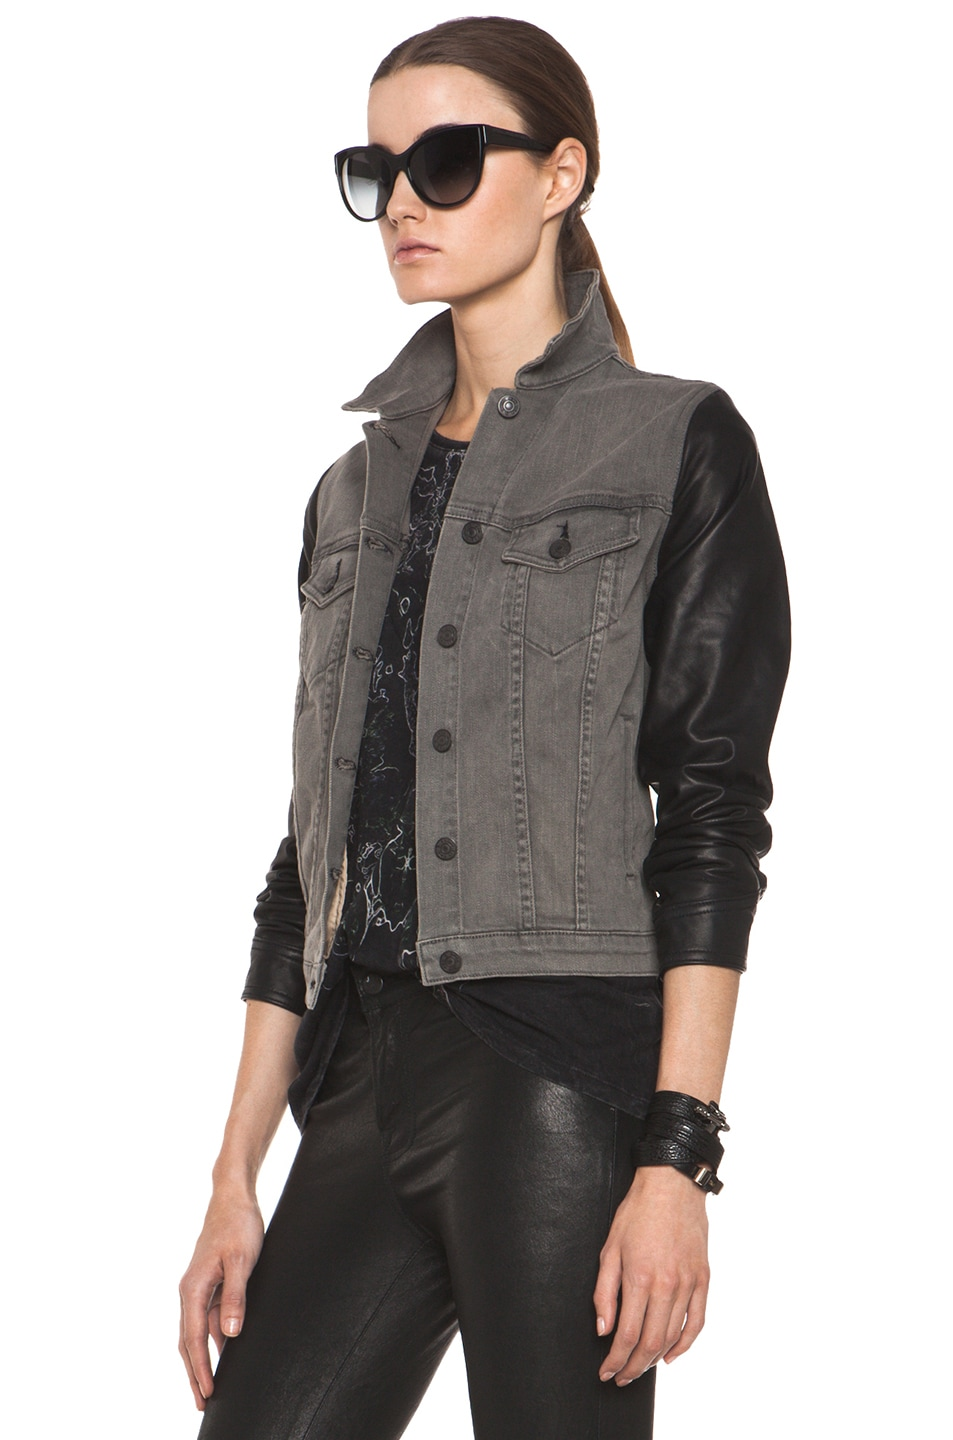 Image 2 of rag & bone JEAN Denim Jacket with Leather Sleeves in Iron